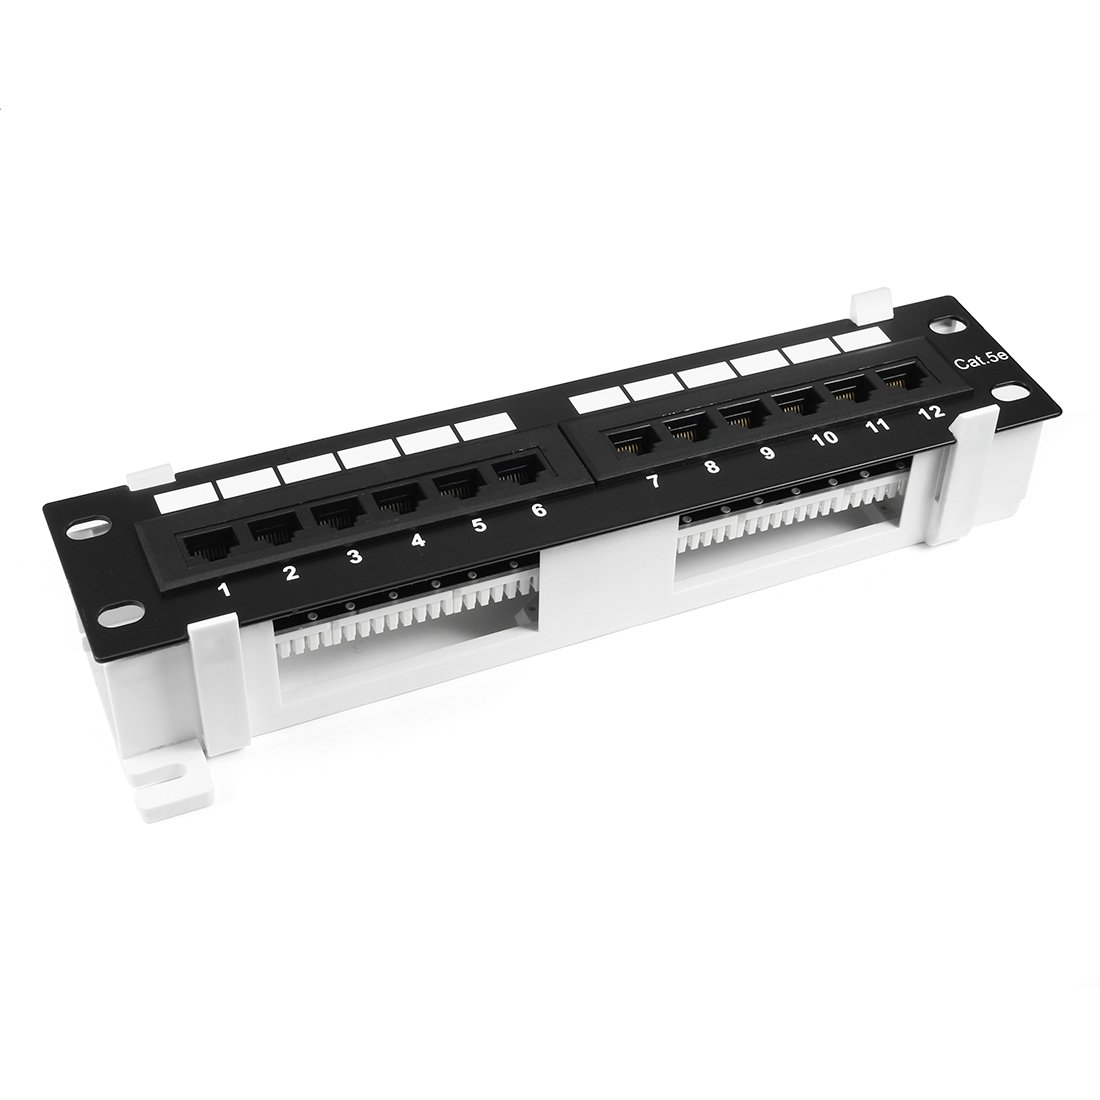 uxcell 12-Port Cat5E UTP Unsheilded Rackmount Network Patch Panel RJ45 Ethernet With Wallmount Bracket Black Compatible with 110 Punch Down Tools by uxcell